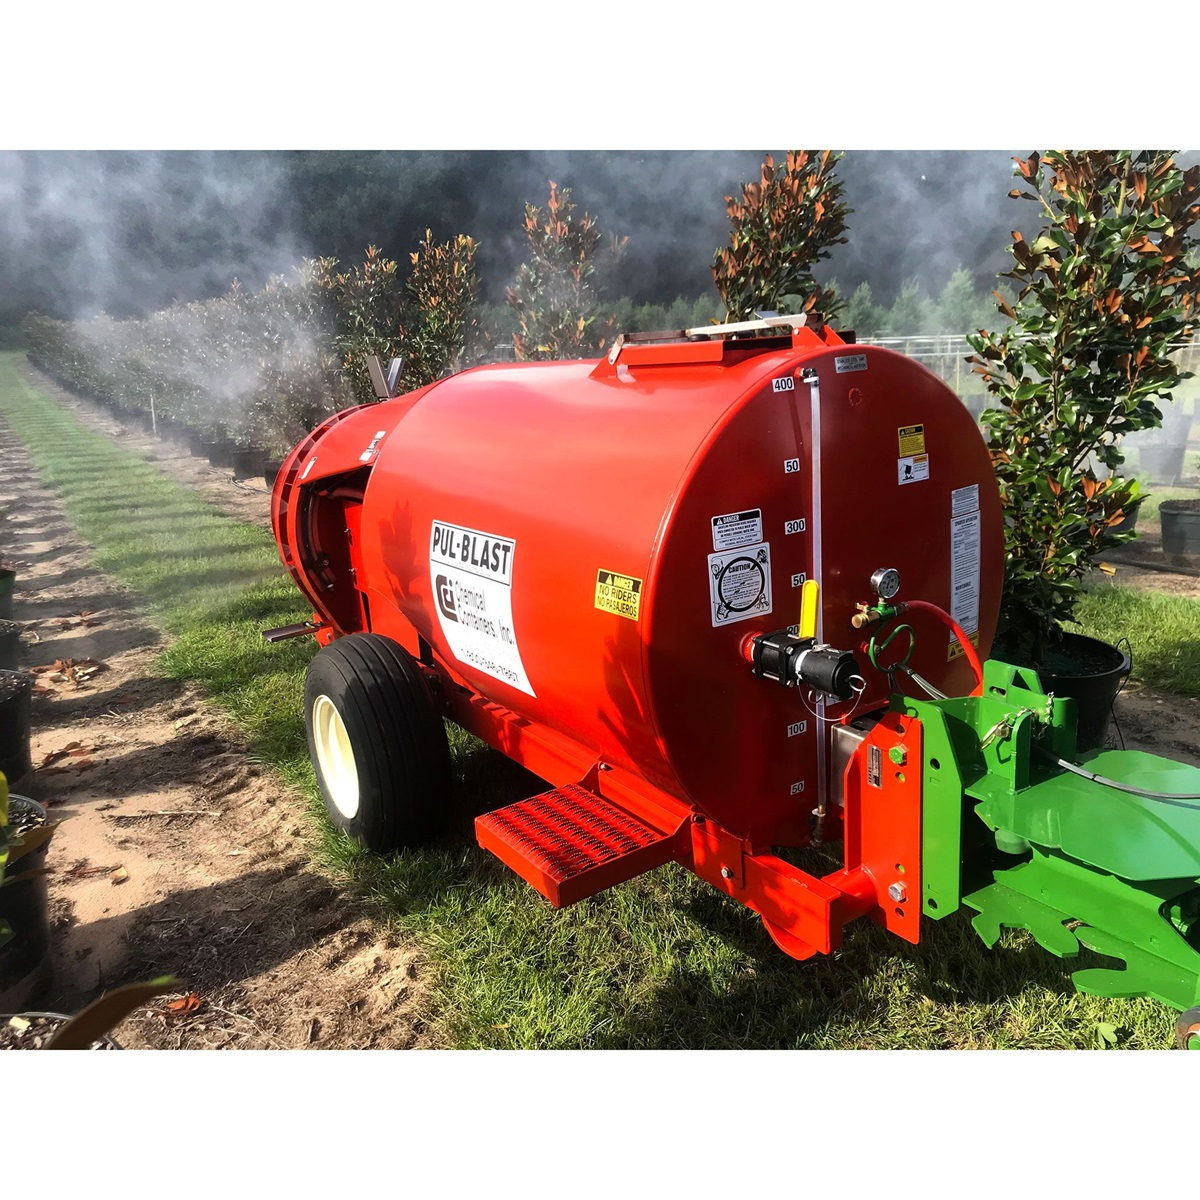 CCI - Rears Narrow 400 Gallon Pul-Blast 28